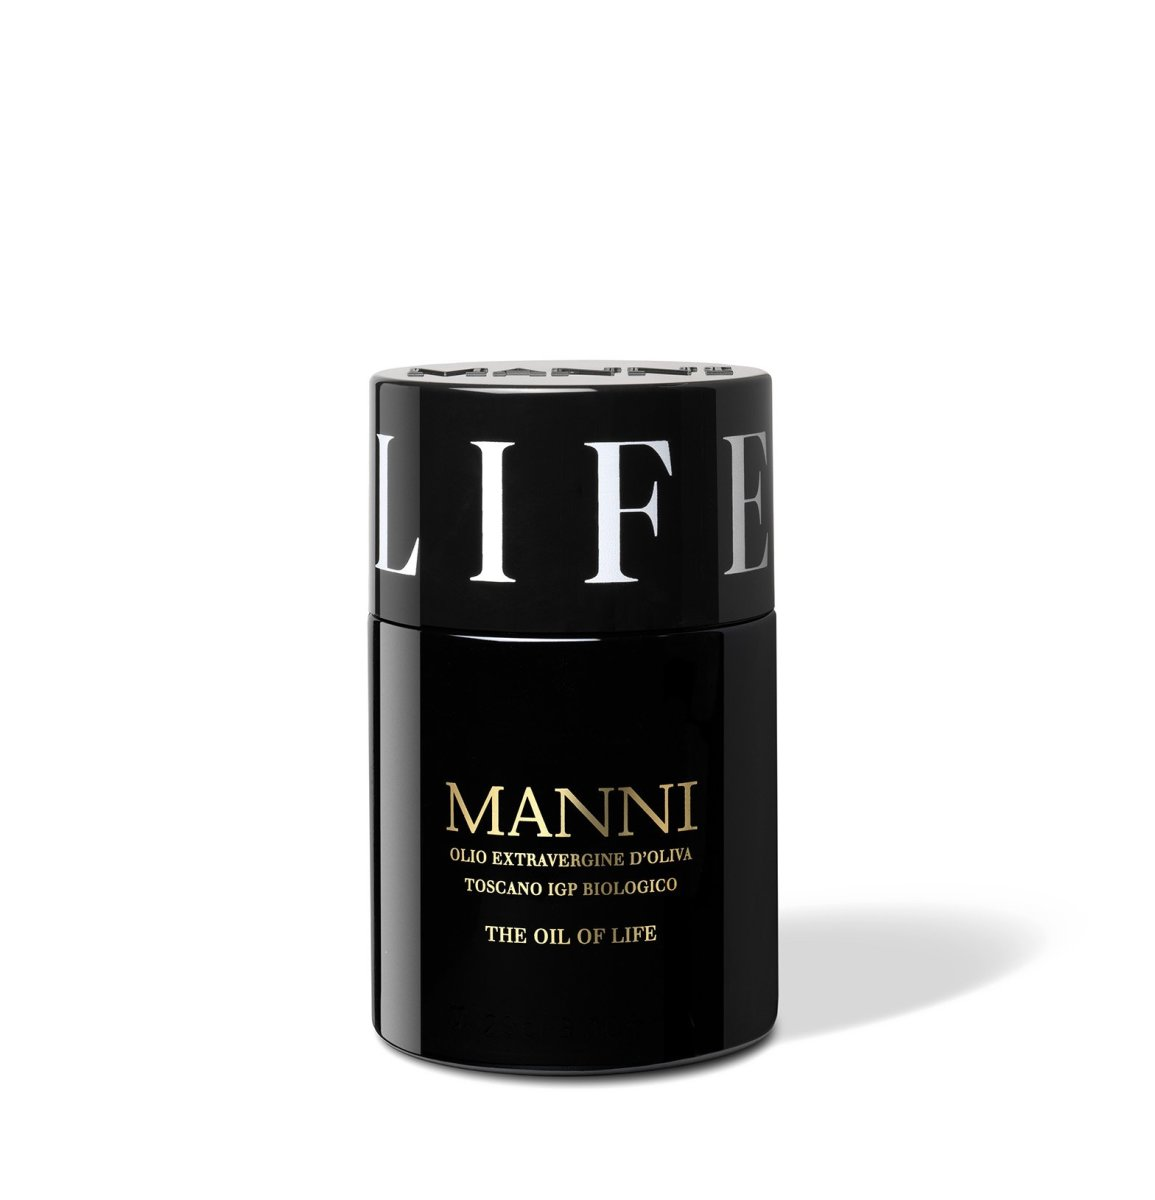 Manni Tuscan Oil of Life Olive Oil